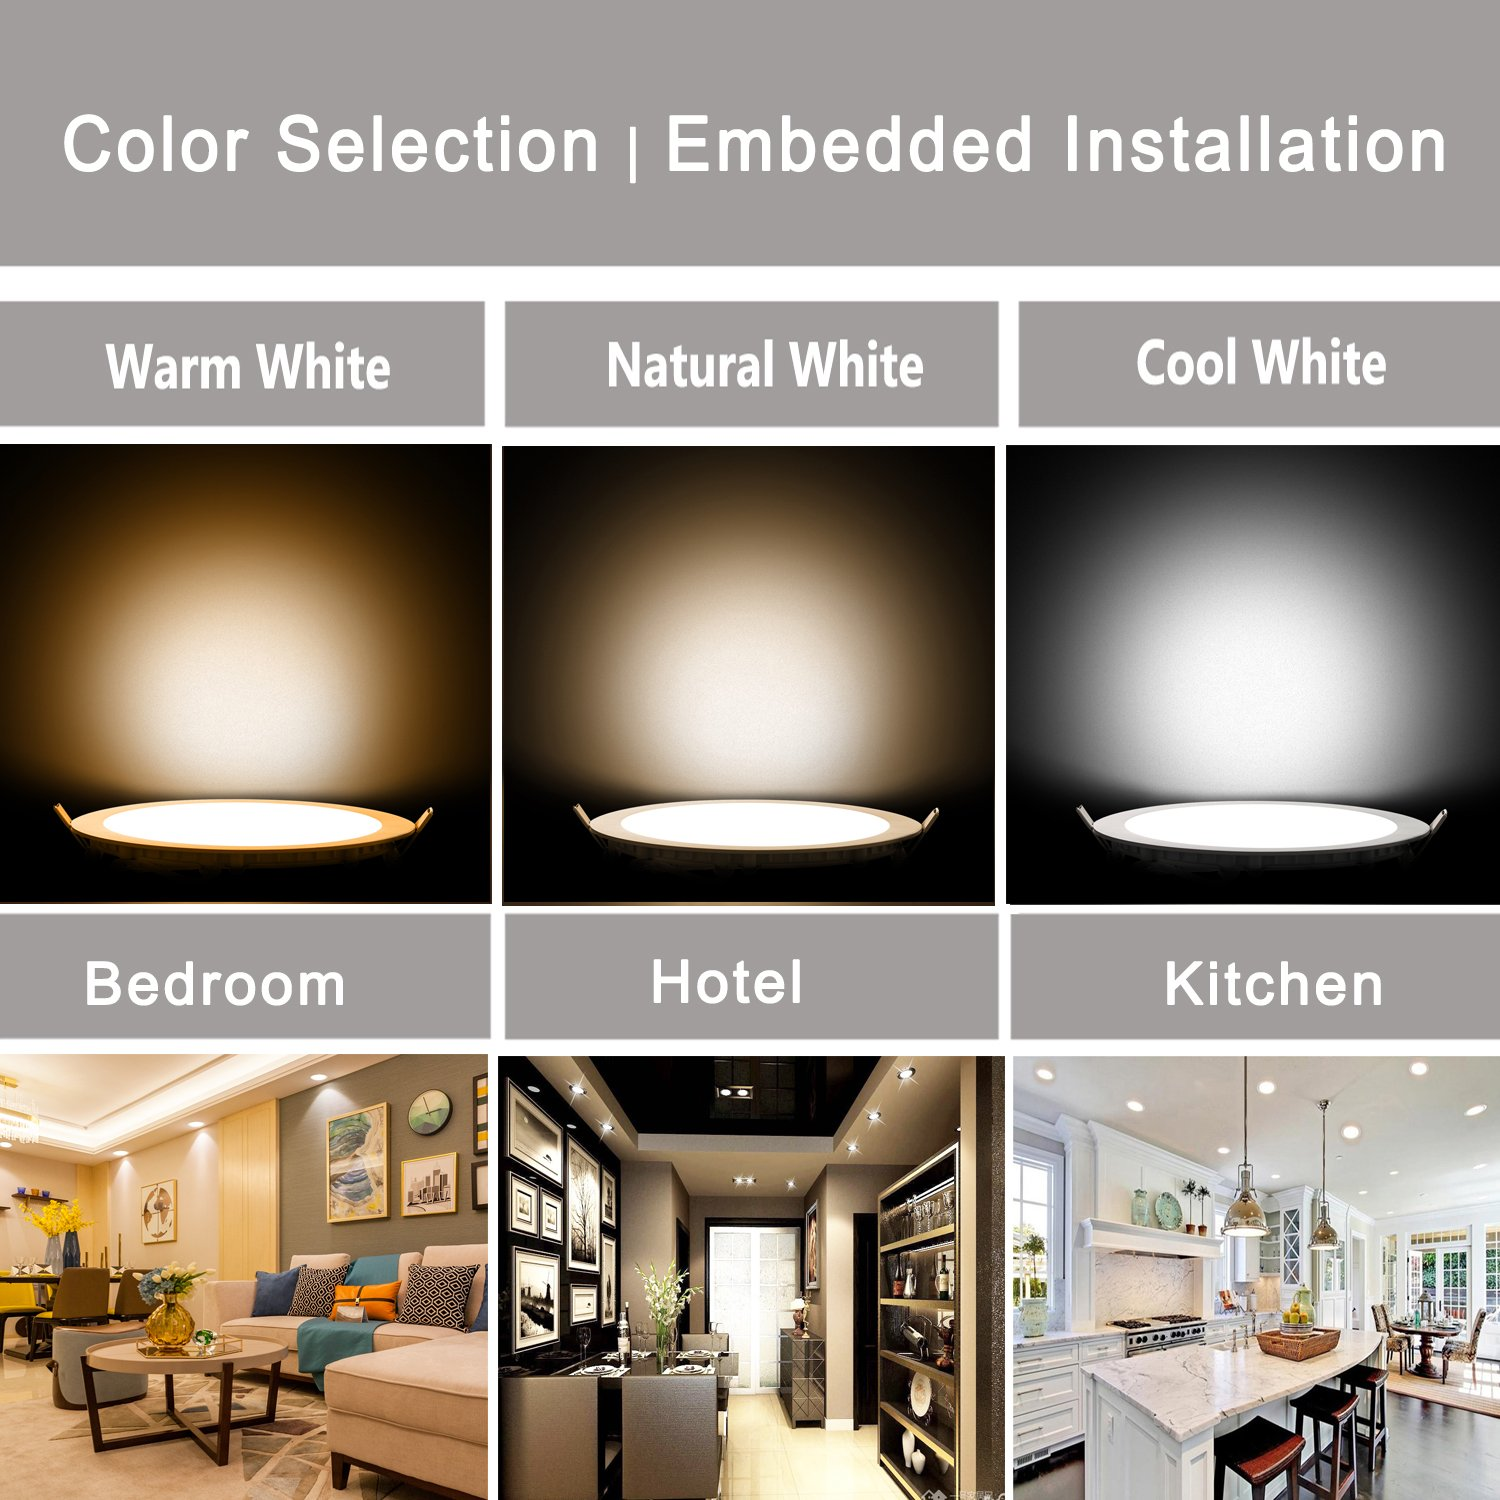 (Pack of 5)LED Panel Recessed Lights 6 inch Dimmable,12W Ultra-Thin Round LED Panel Light,5000K Daylight White,960lm,LED Recessed Ceiling Downlight Fixture,110V LED Driver Included